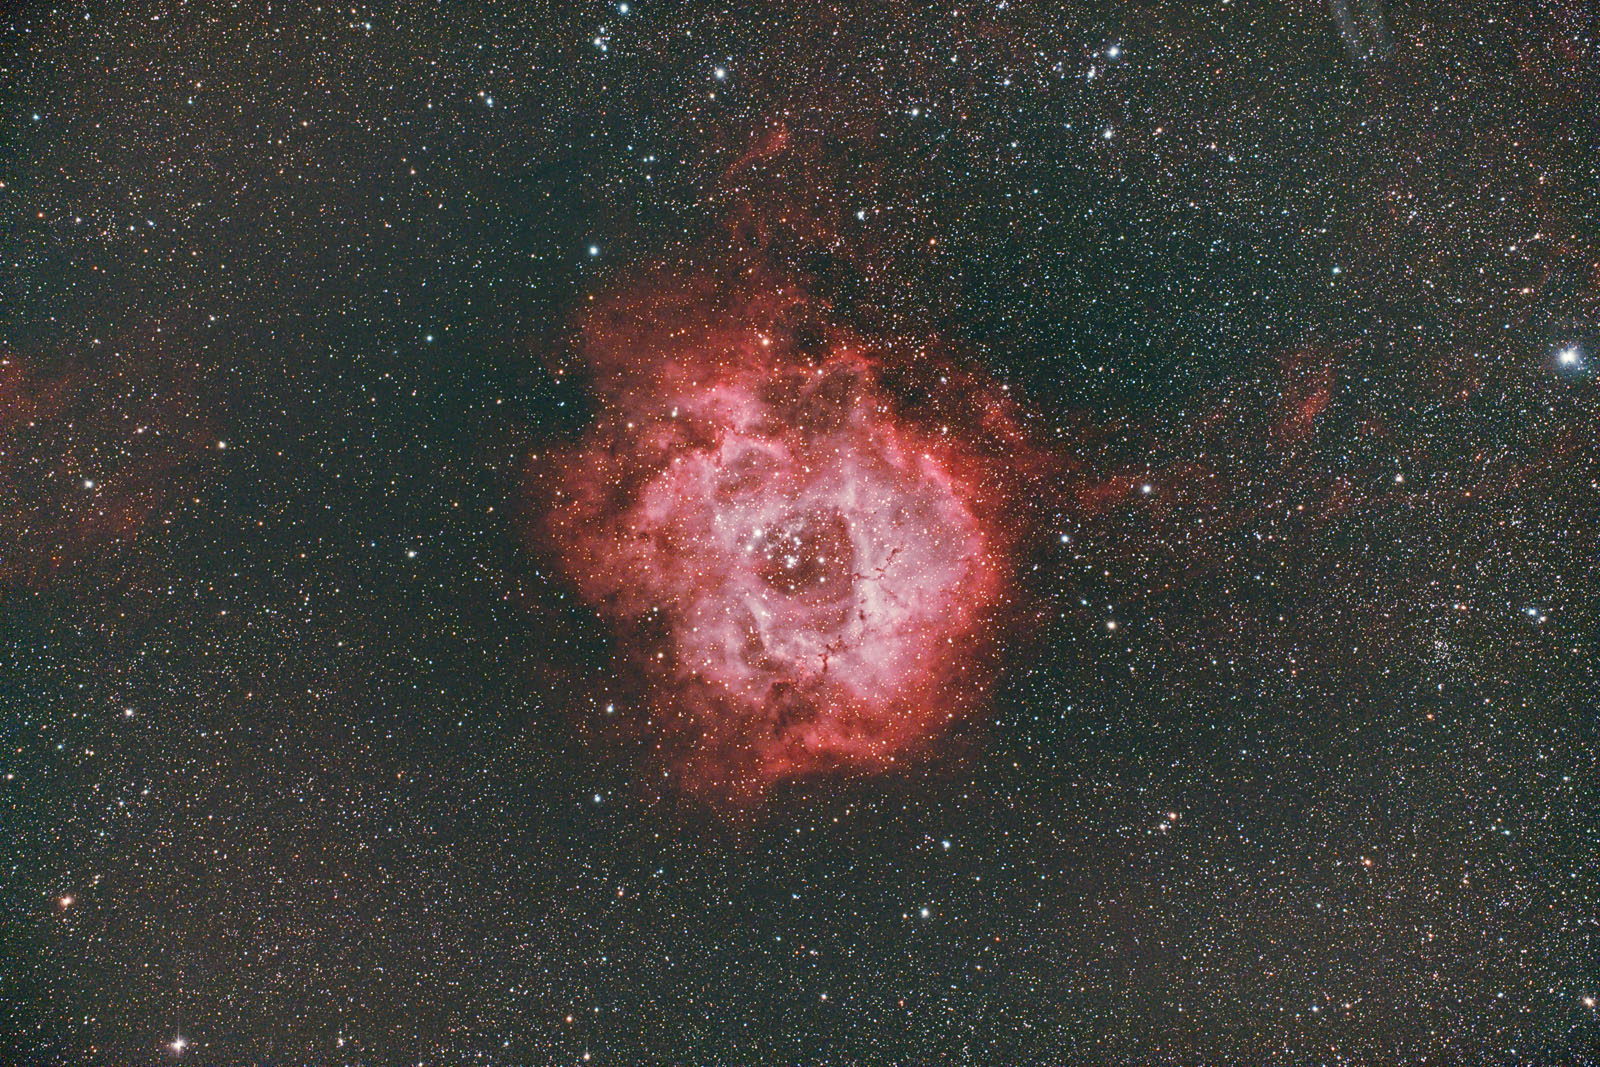 Rosette_light_BINNING_1_integration_ABE_ABE_reprocess_1600.jpg